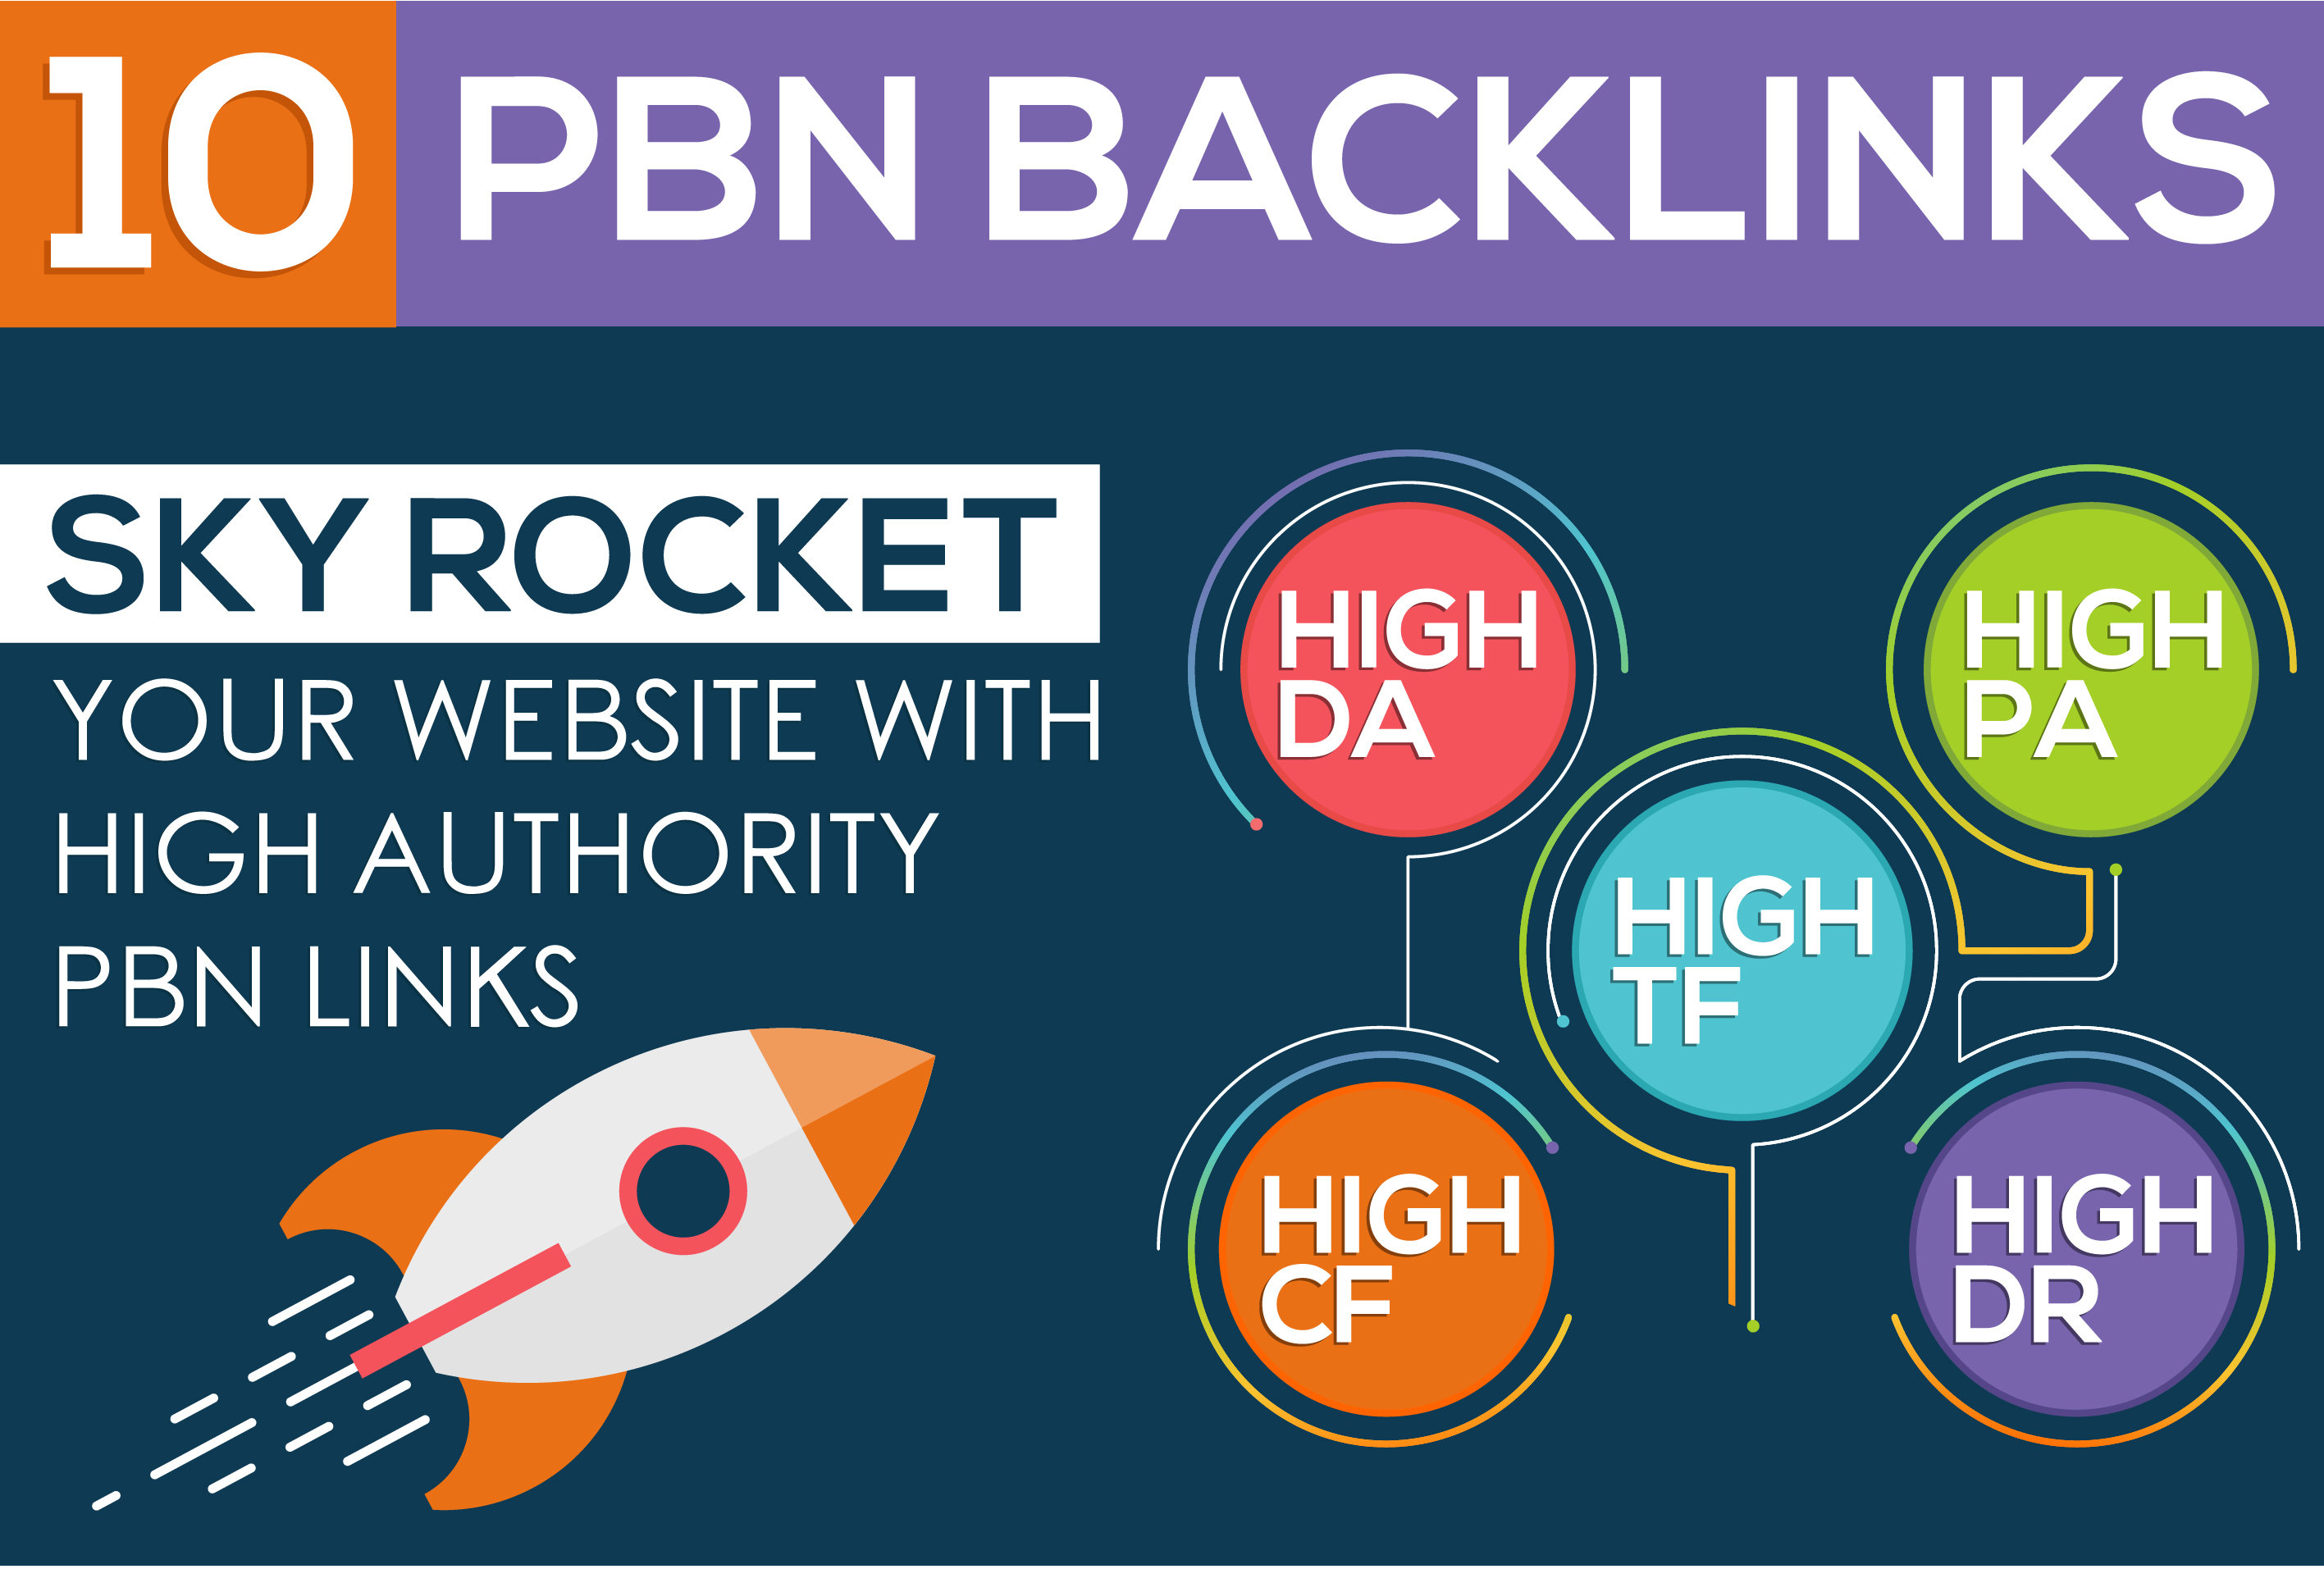 Create 10 HIGH AUTHORITY PBN Backlinks